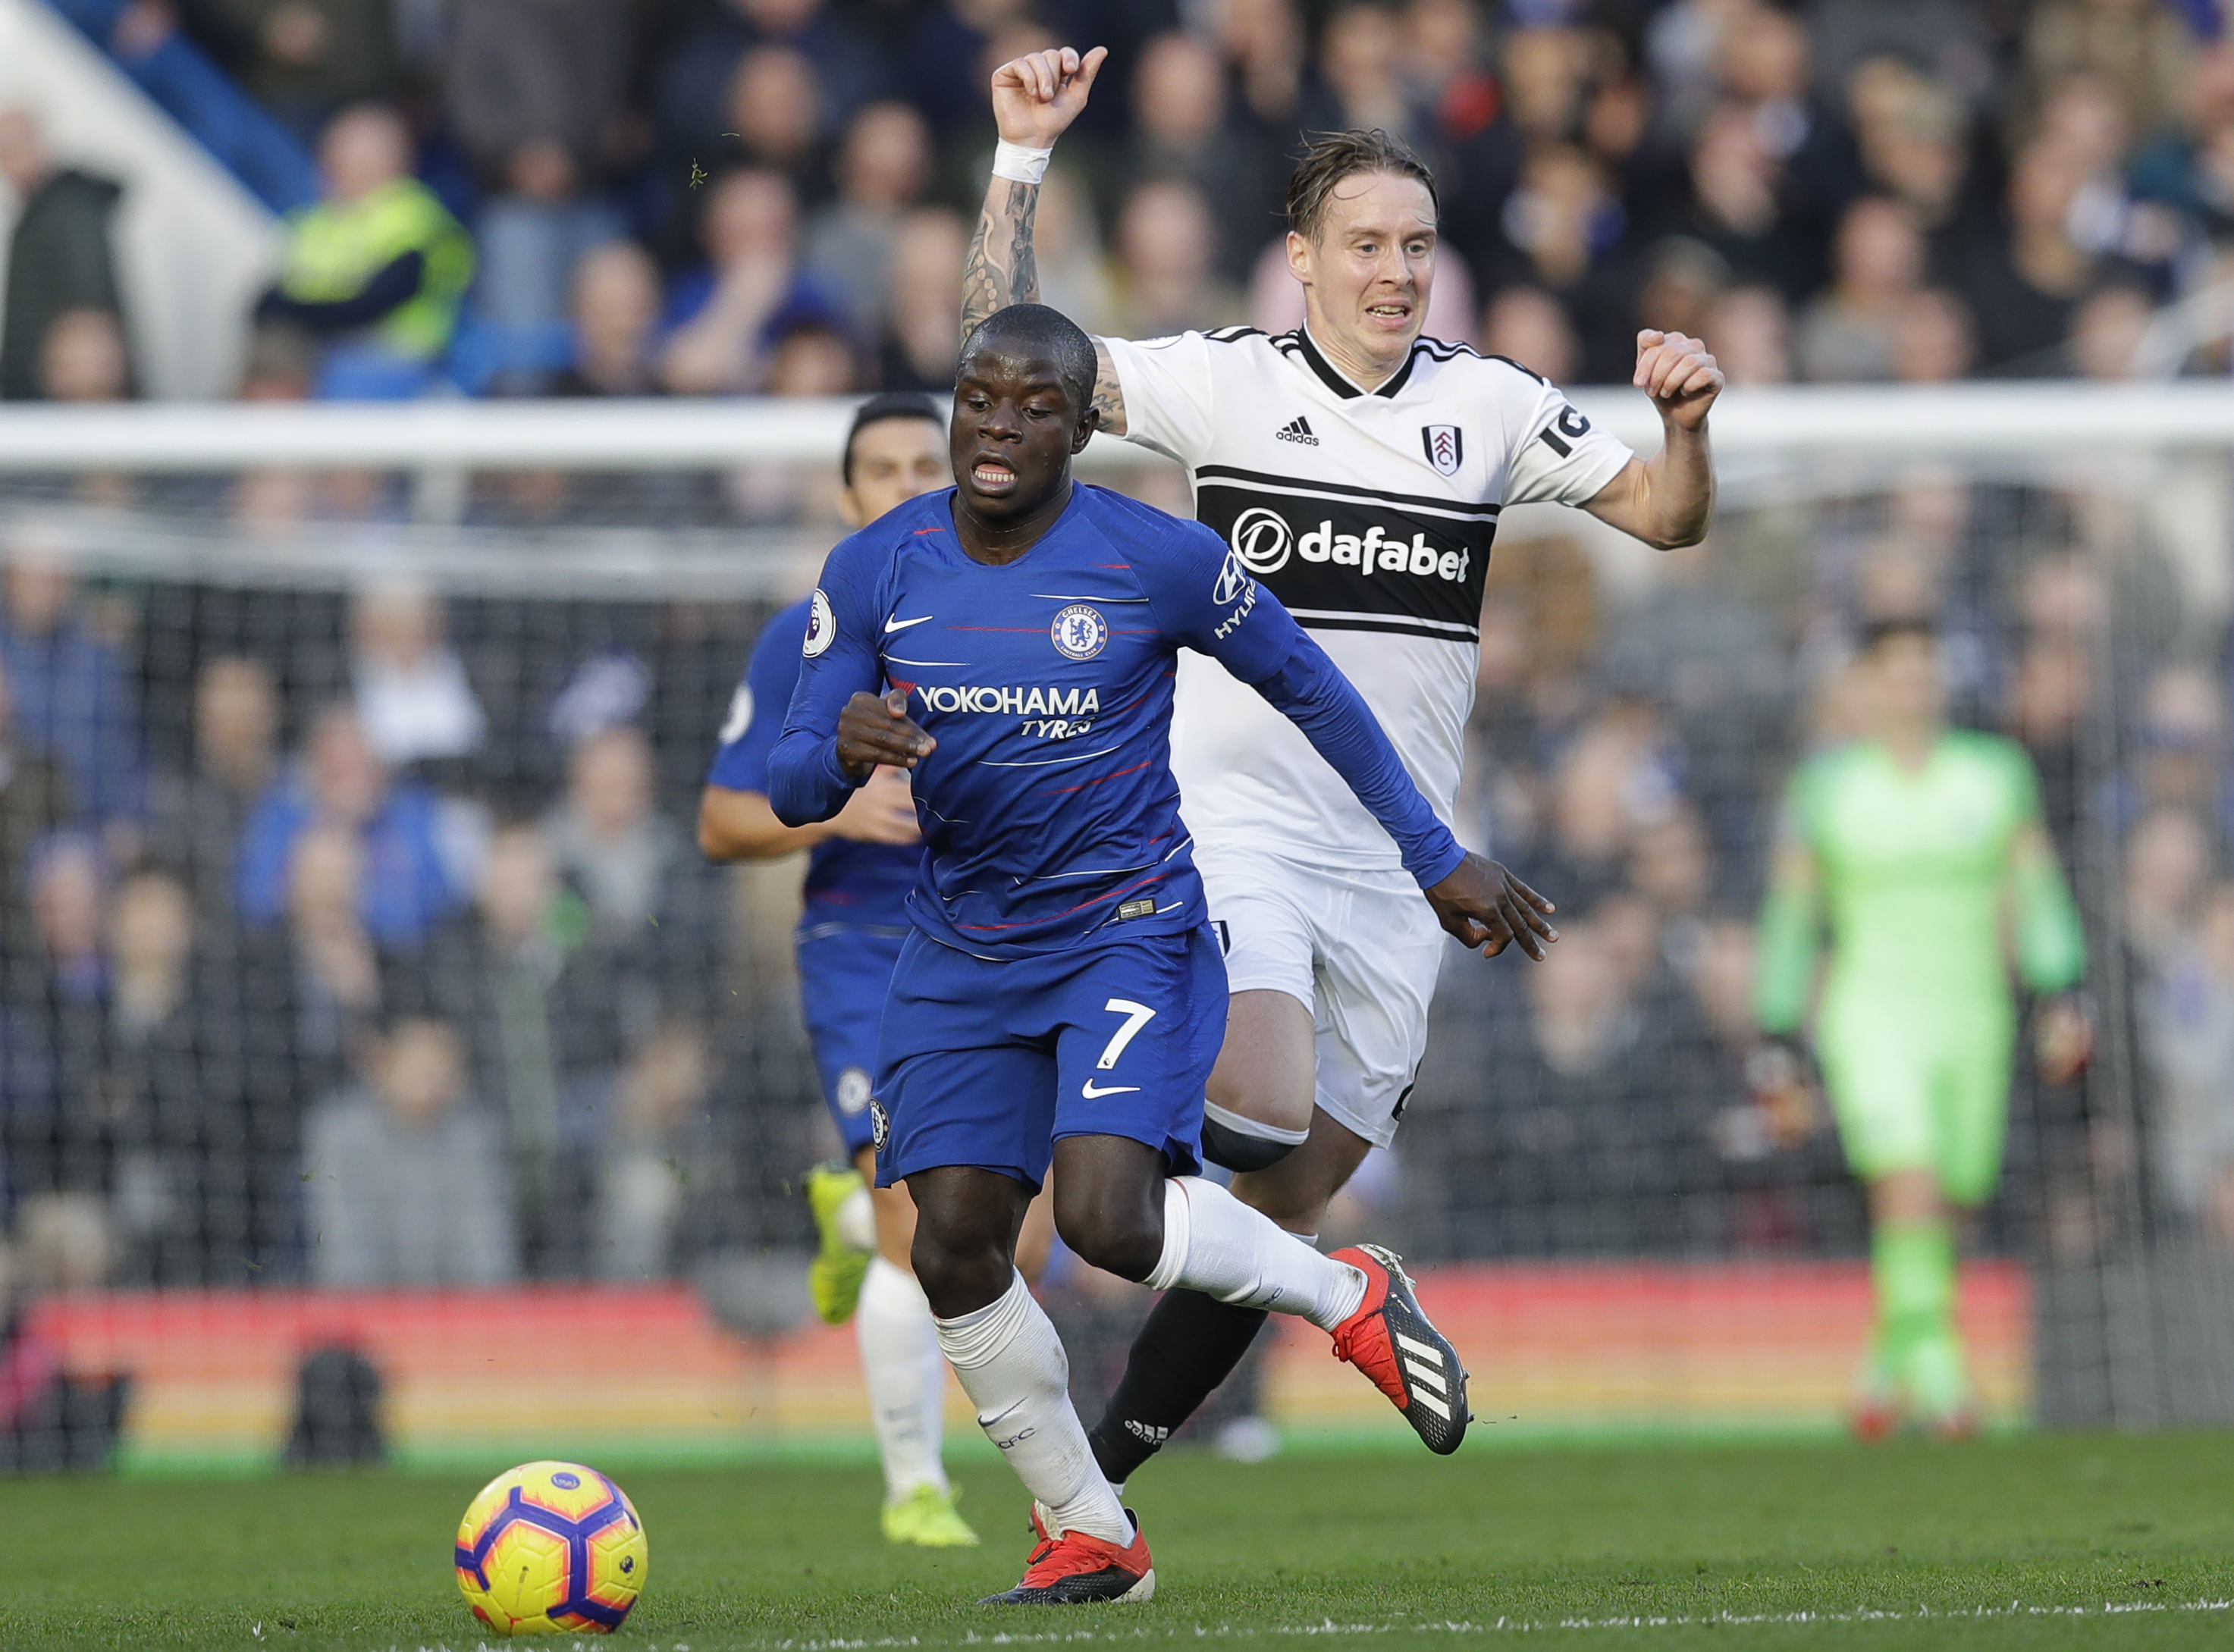 Kante shows his better side, helps Chelsea beat Fulham 2-0